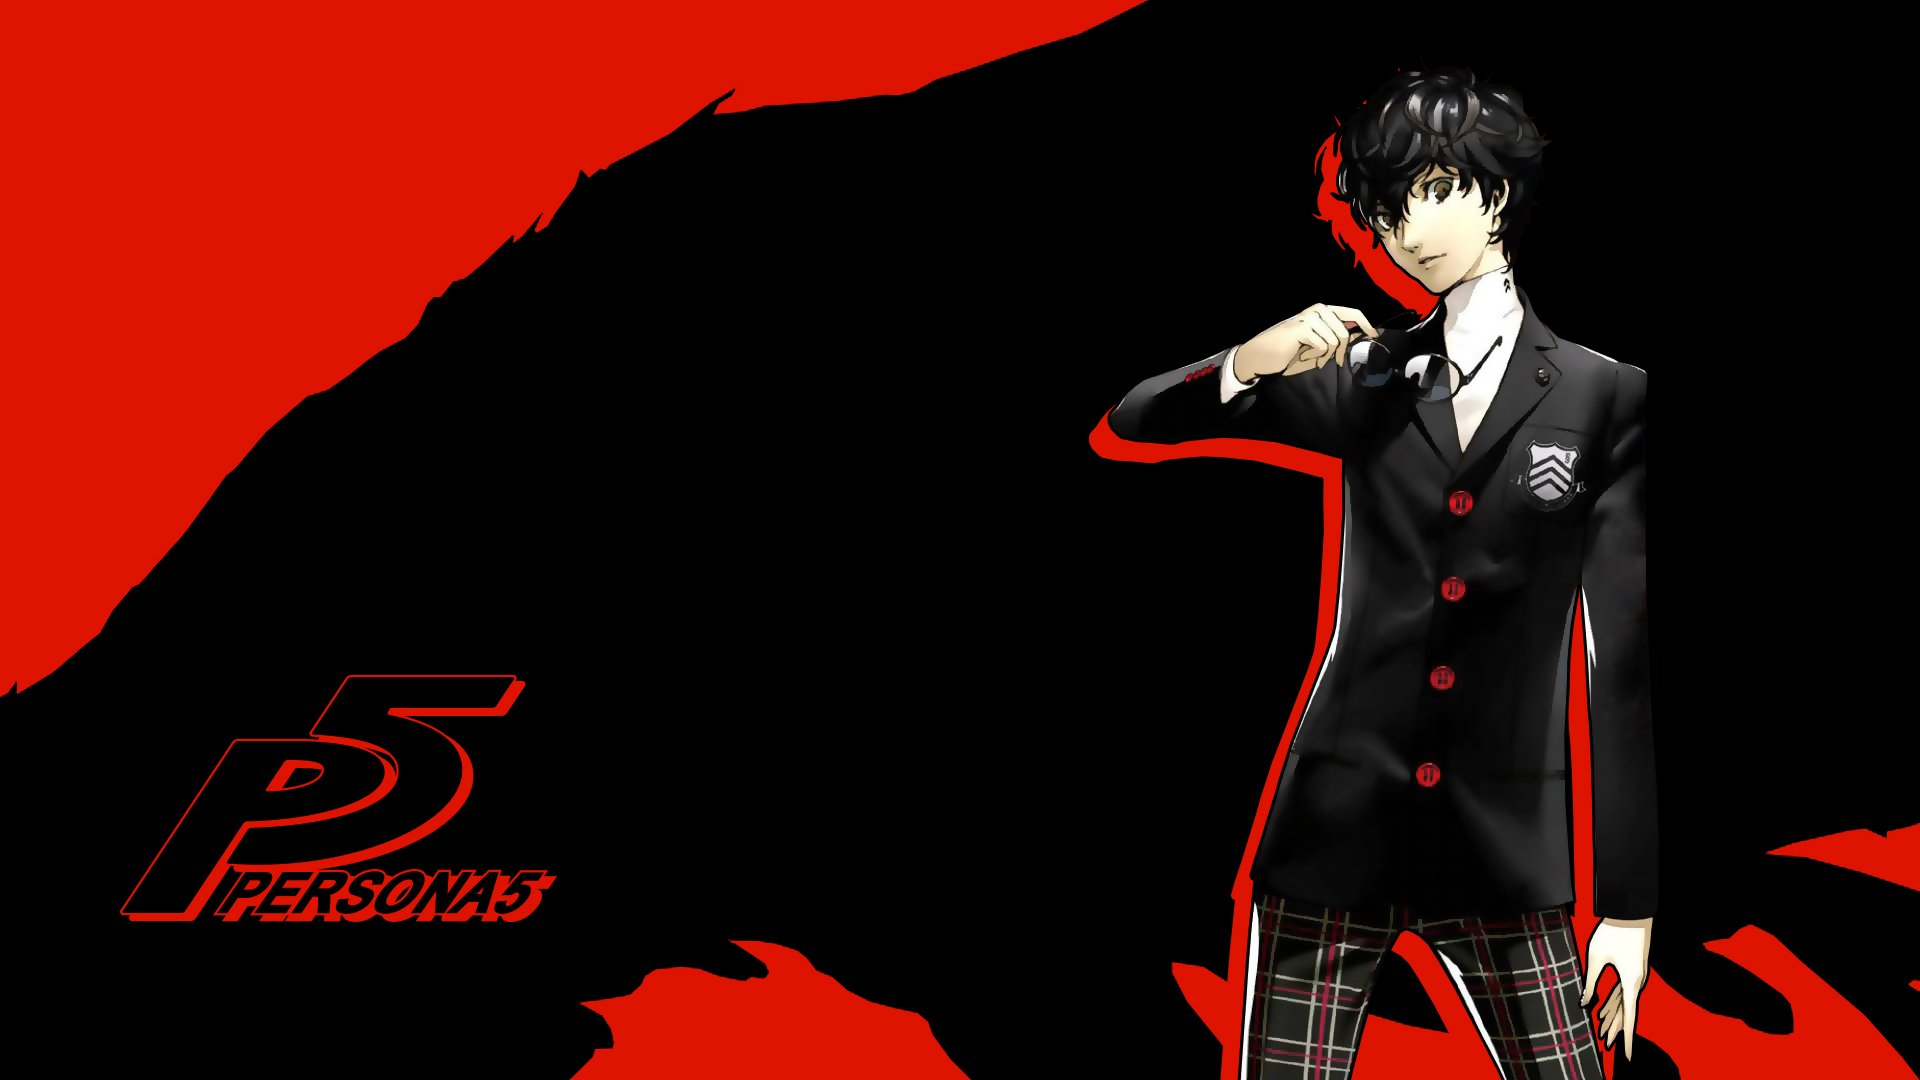 persona_5_wallpaper___protagonist_by_seraharcana-d8hr4s7